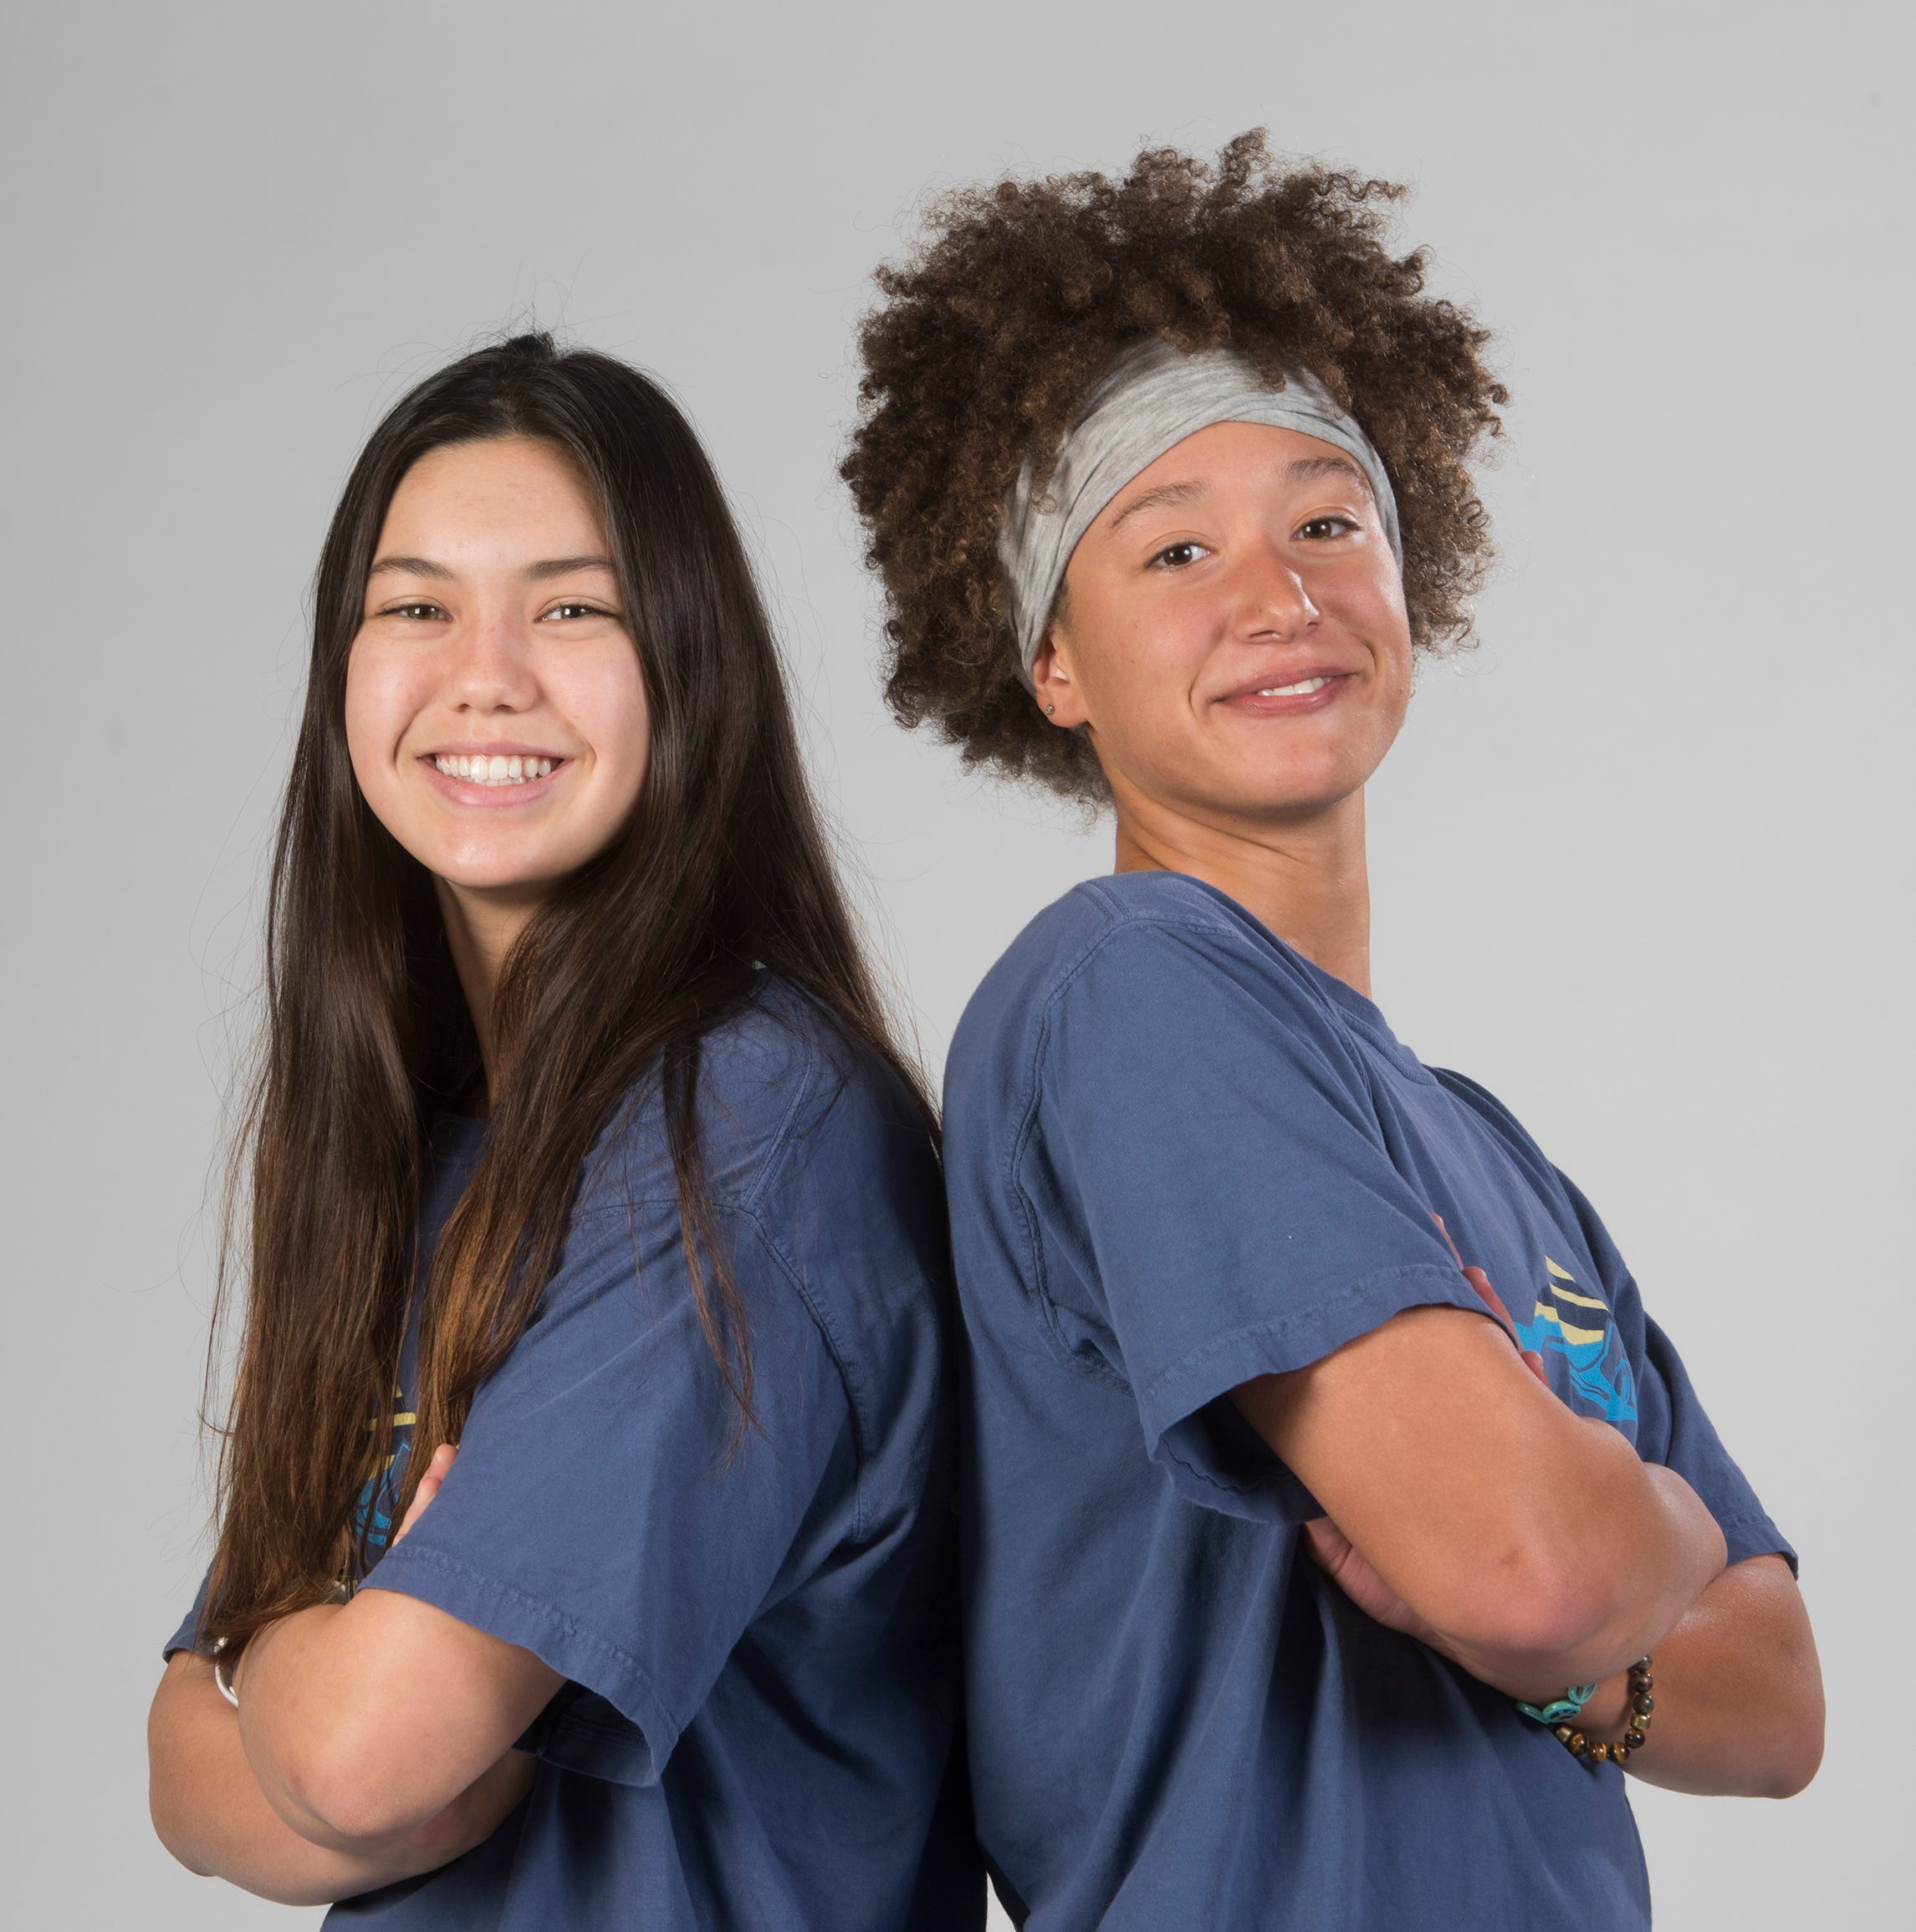 Cali Wilson, and Makayla Ludwick from Gulf Breeze are the Girls co-swimmers of year